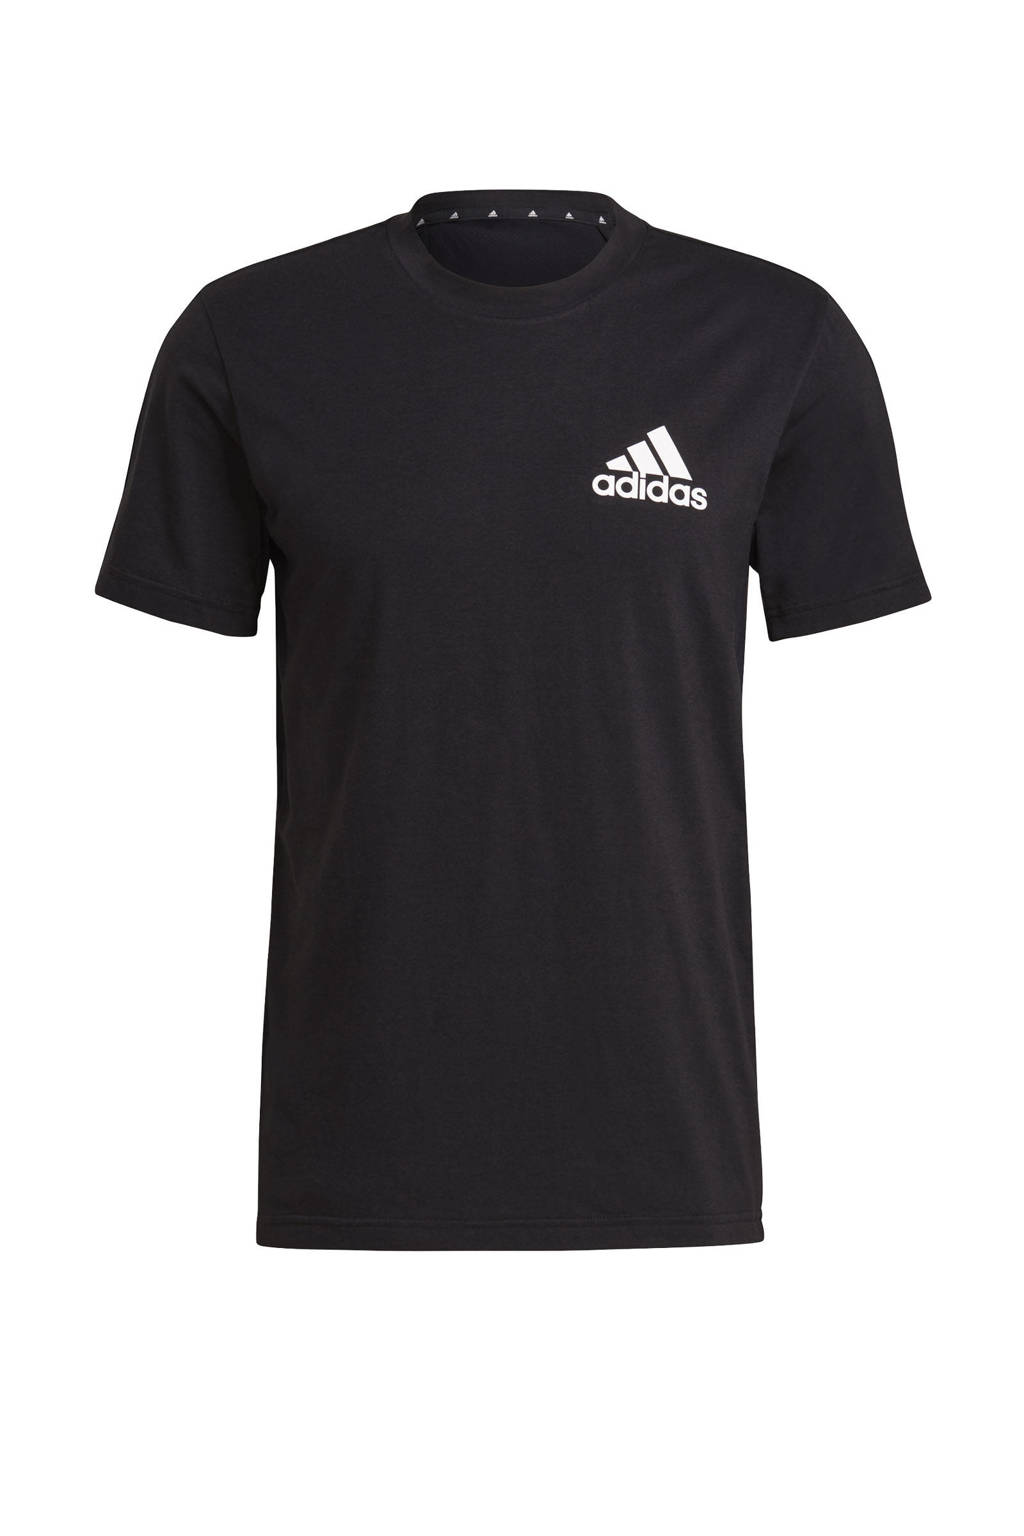 adidas Performance   Designed2Move sport T-shirt zwart/wit, Zwart/wit